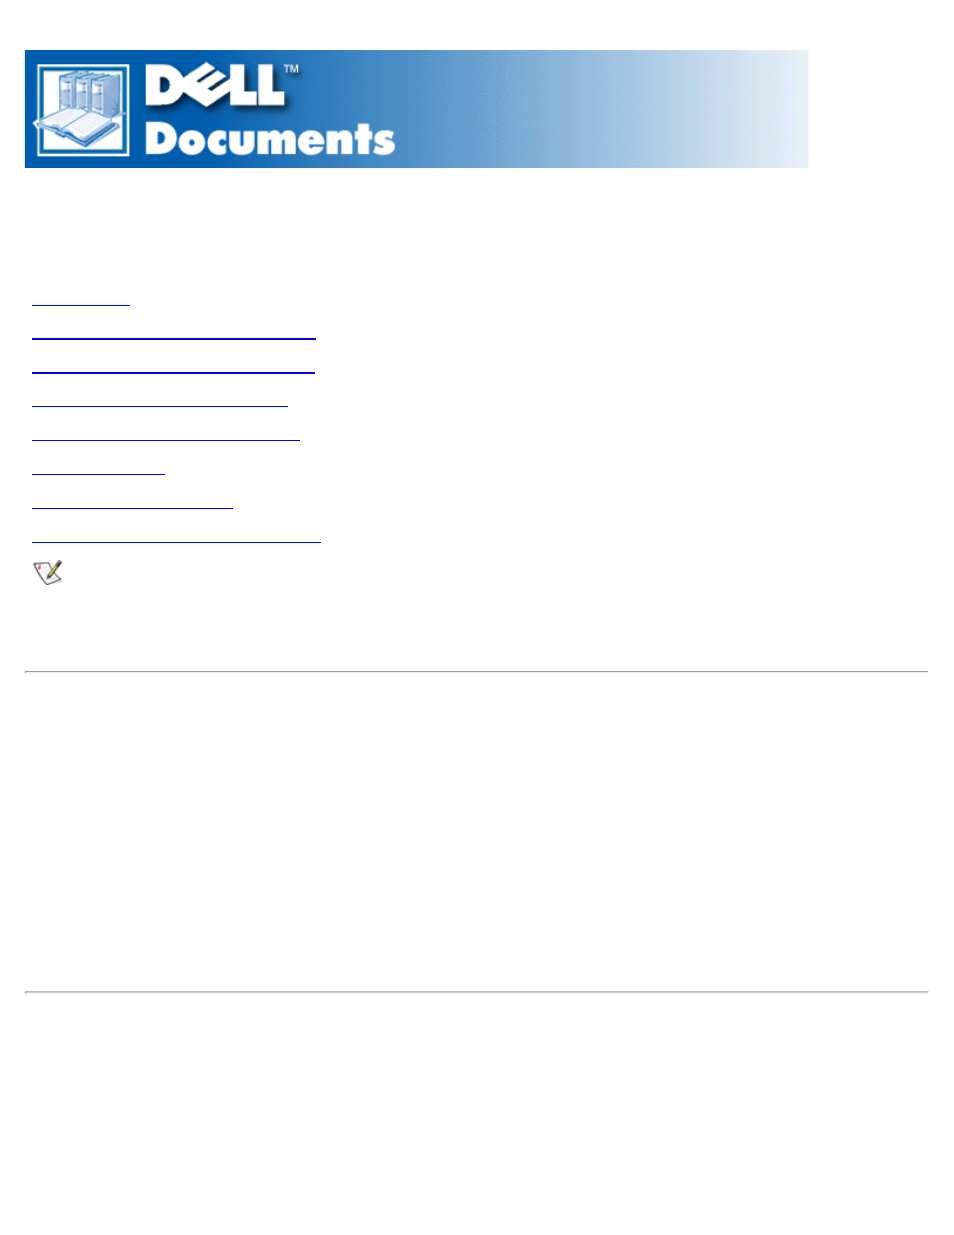 Dell Optiplex Gx1 Motherboard Diagram Wiring Libraries Motherboarddiagram Diagramsdell User Manual 103 Pages 760